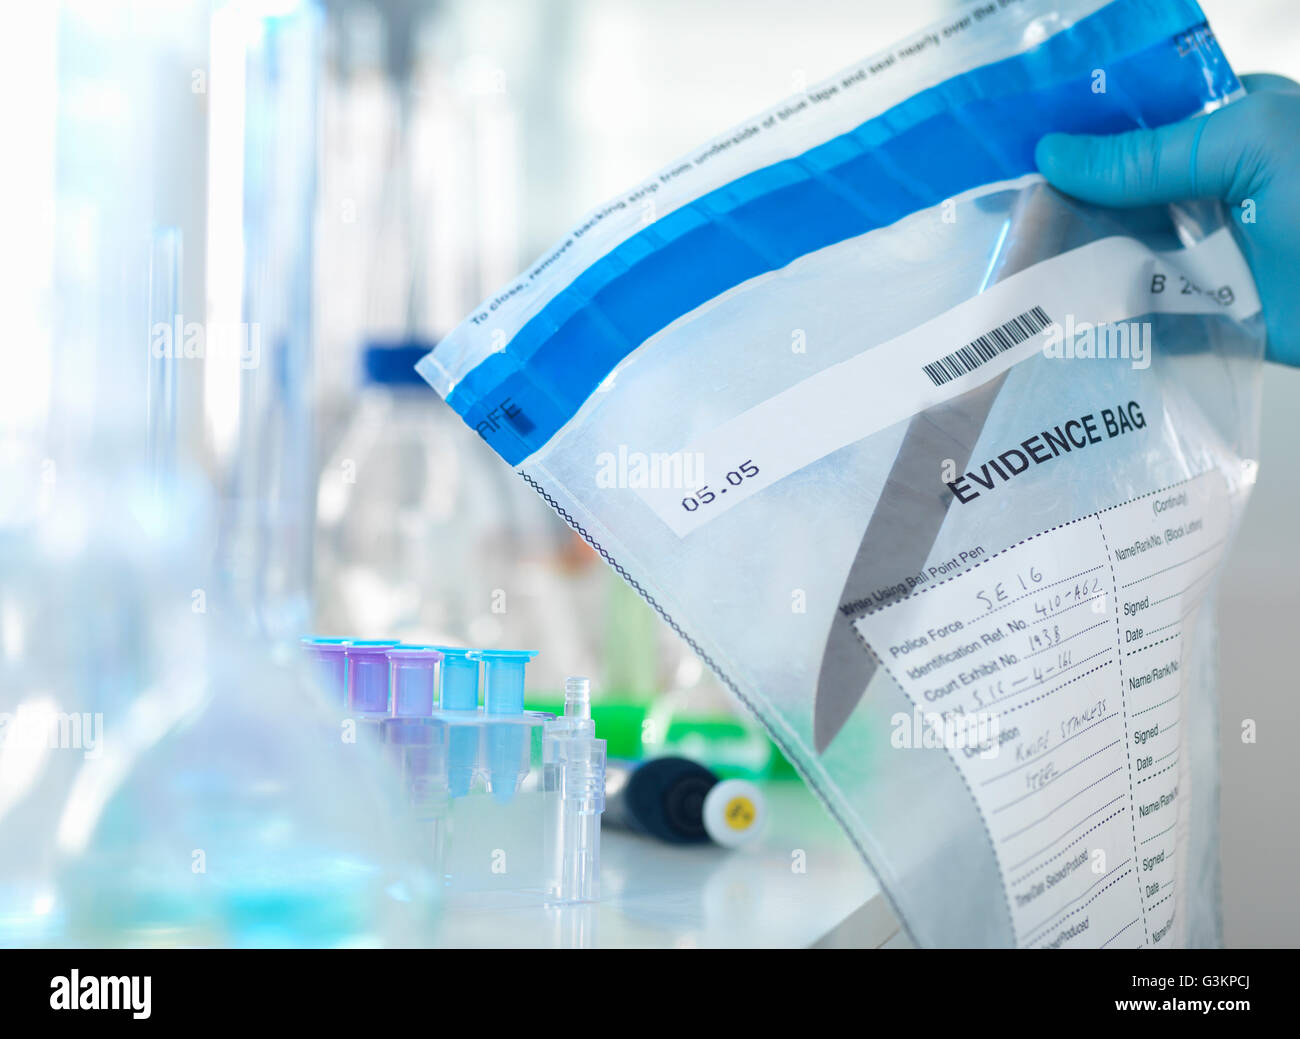 Forensic scientist preparing a knife taken from a scene of crime for DNA analysis - Stock Image